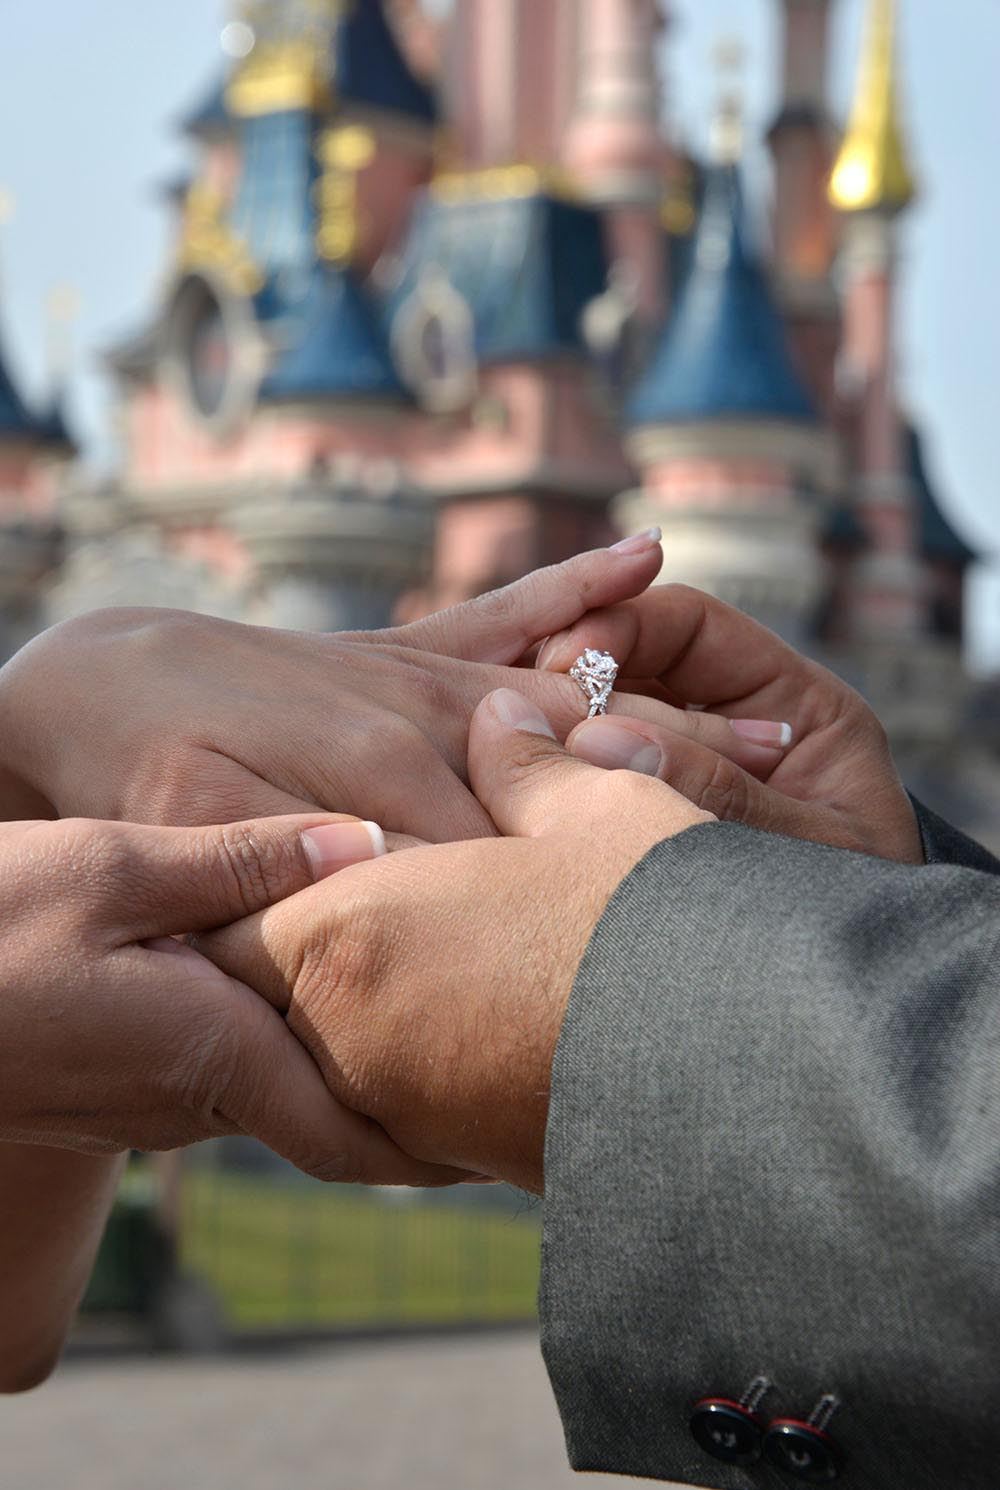 Groom putting engagement ring on bride fingers with EuroDisney backdrop